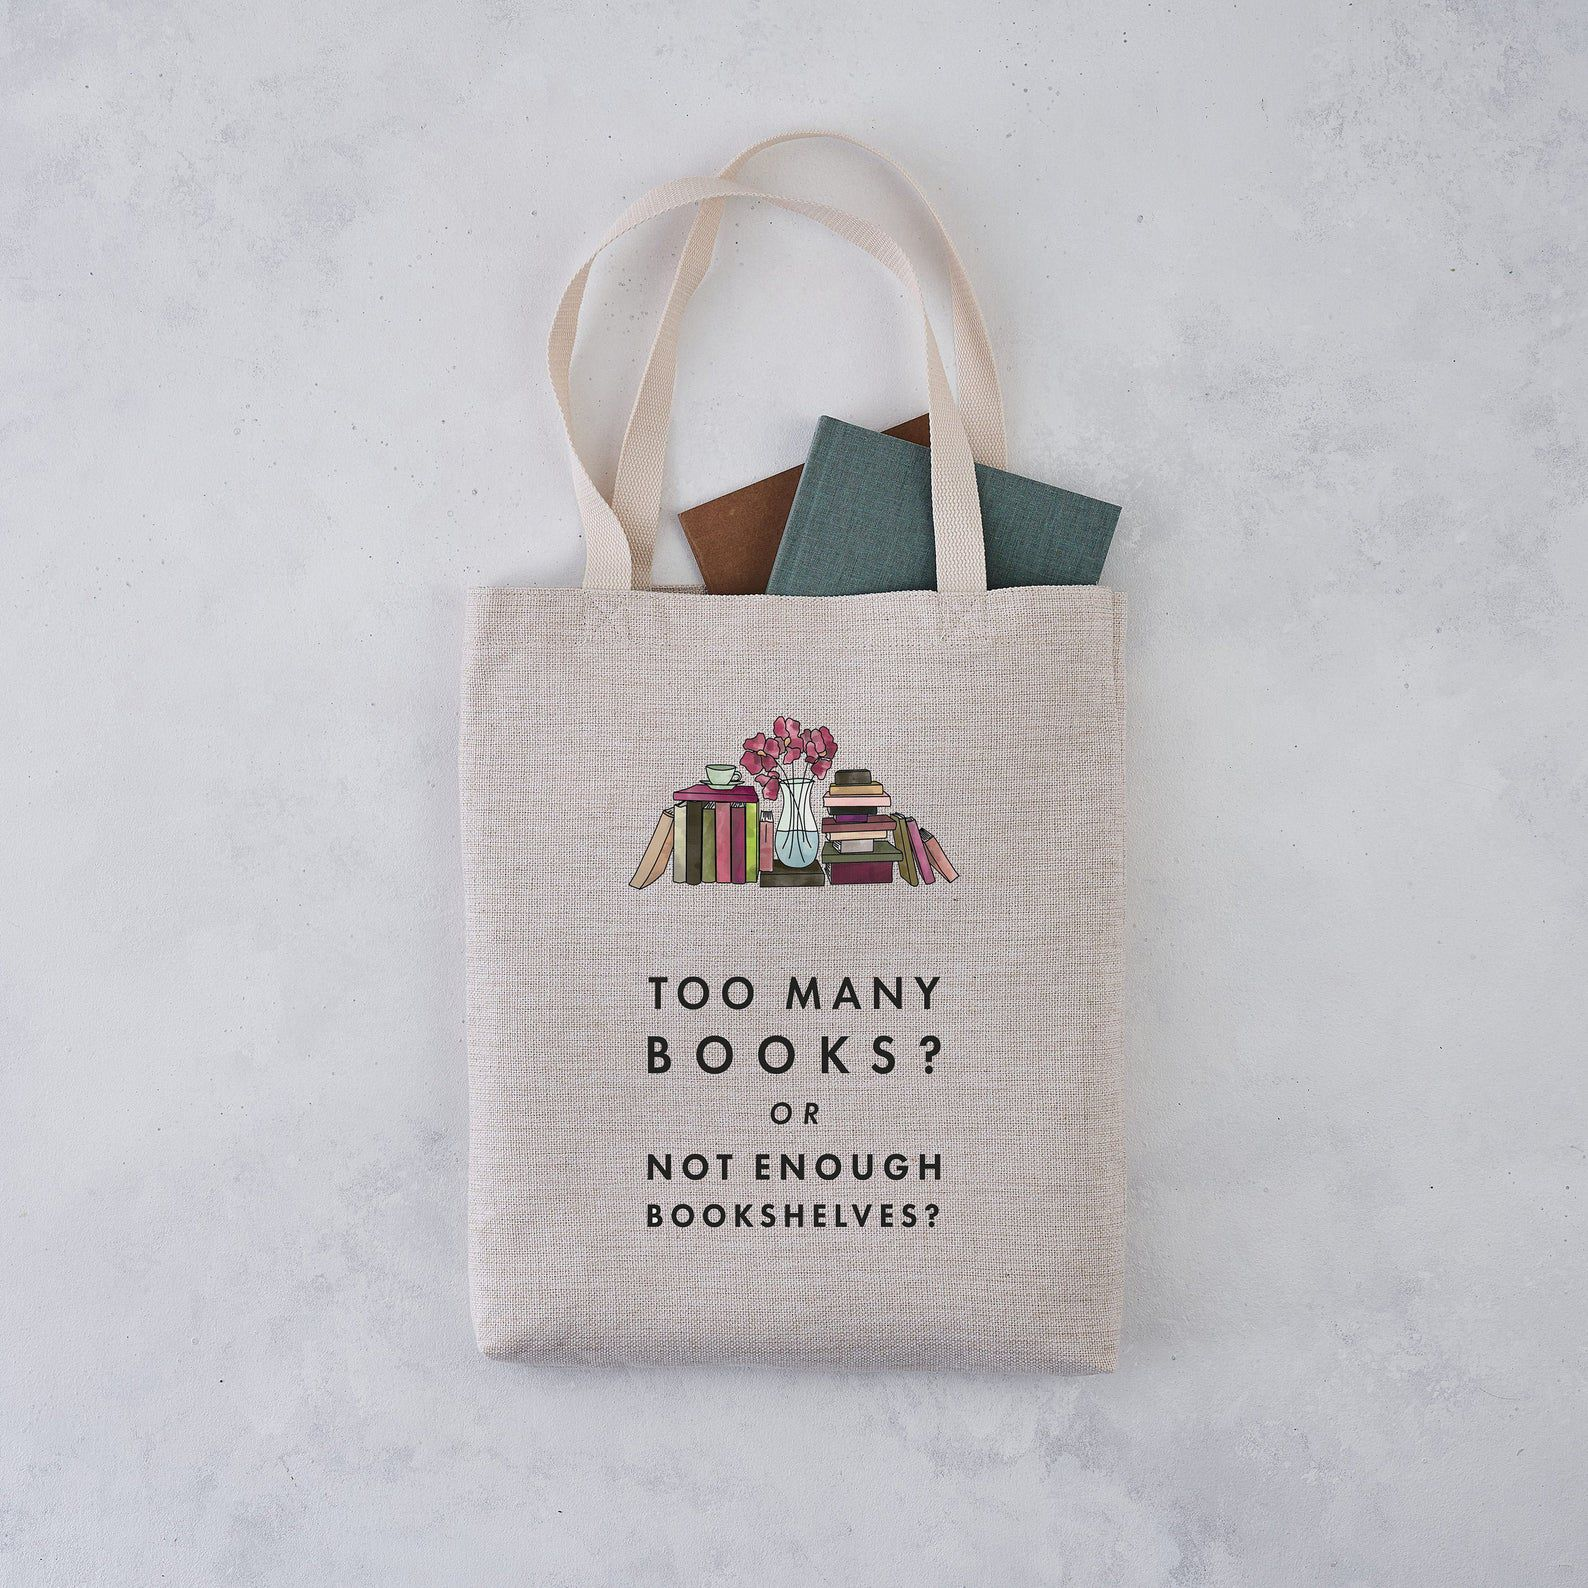 A tote bag with books peeking out rests on a gray background. The tote is light brown in colour and has an image of many books side-by-side and stacked up with a flower vase in the middle. Below, it reads: Too many books? Or not enough bookshelves?